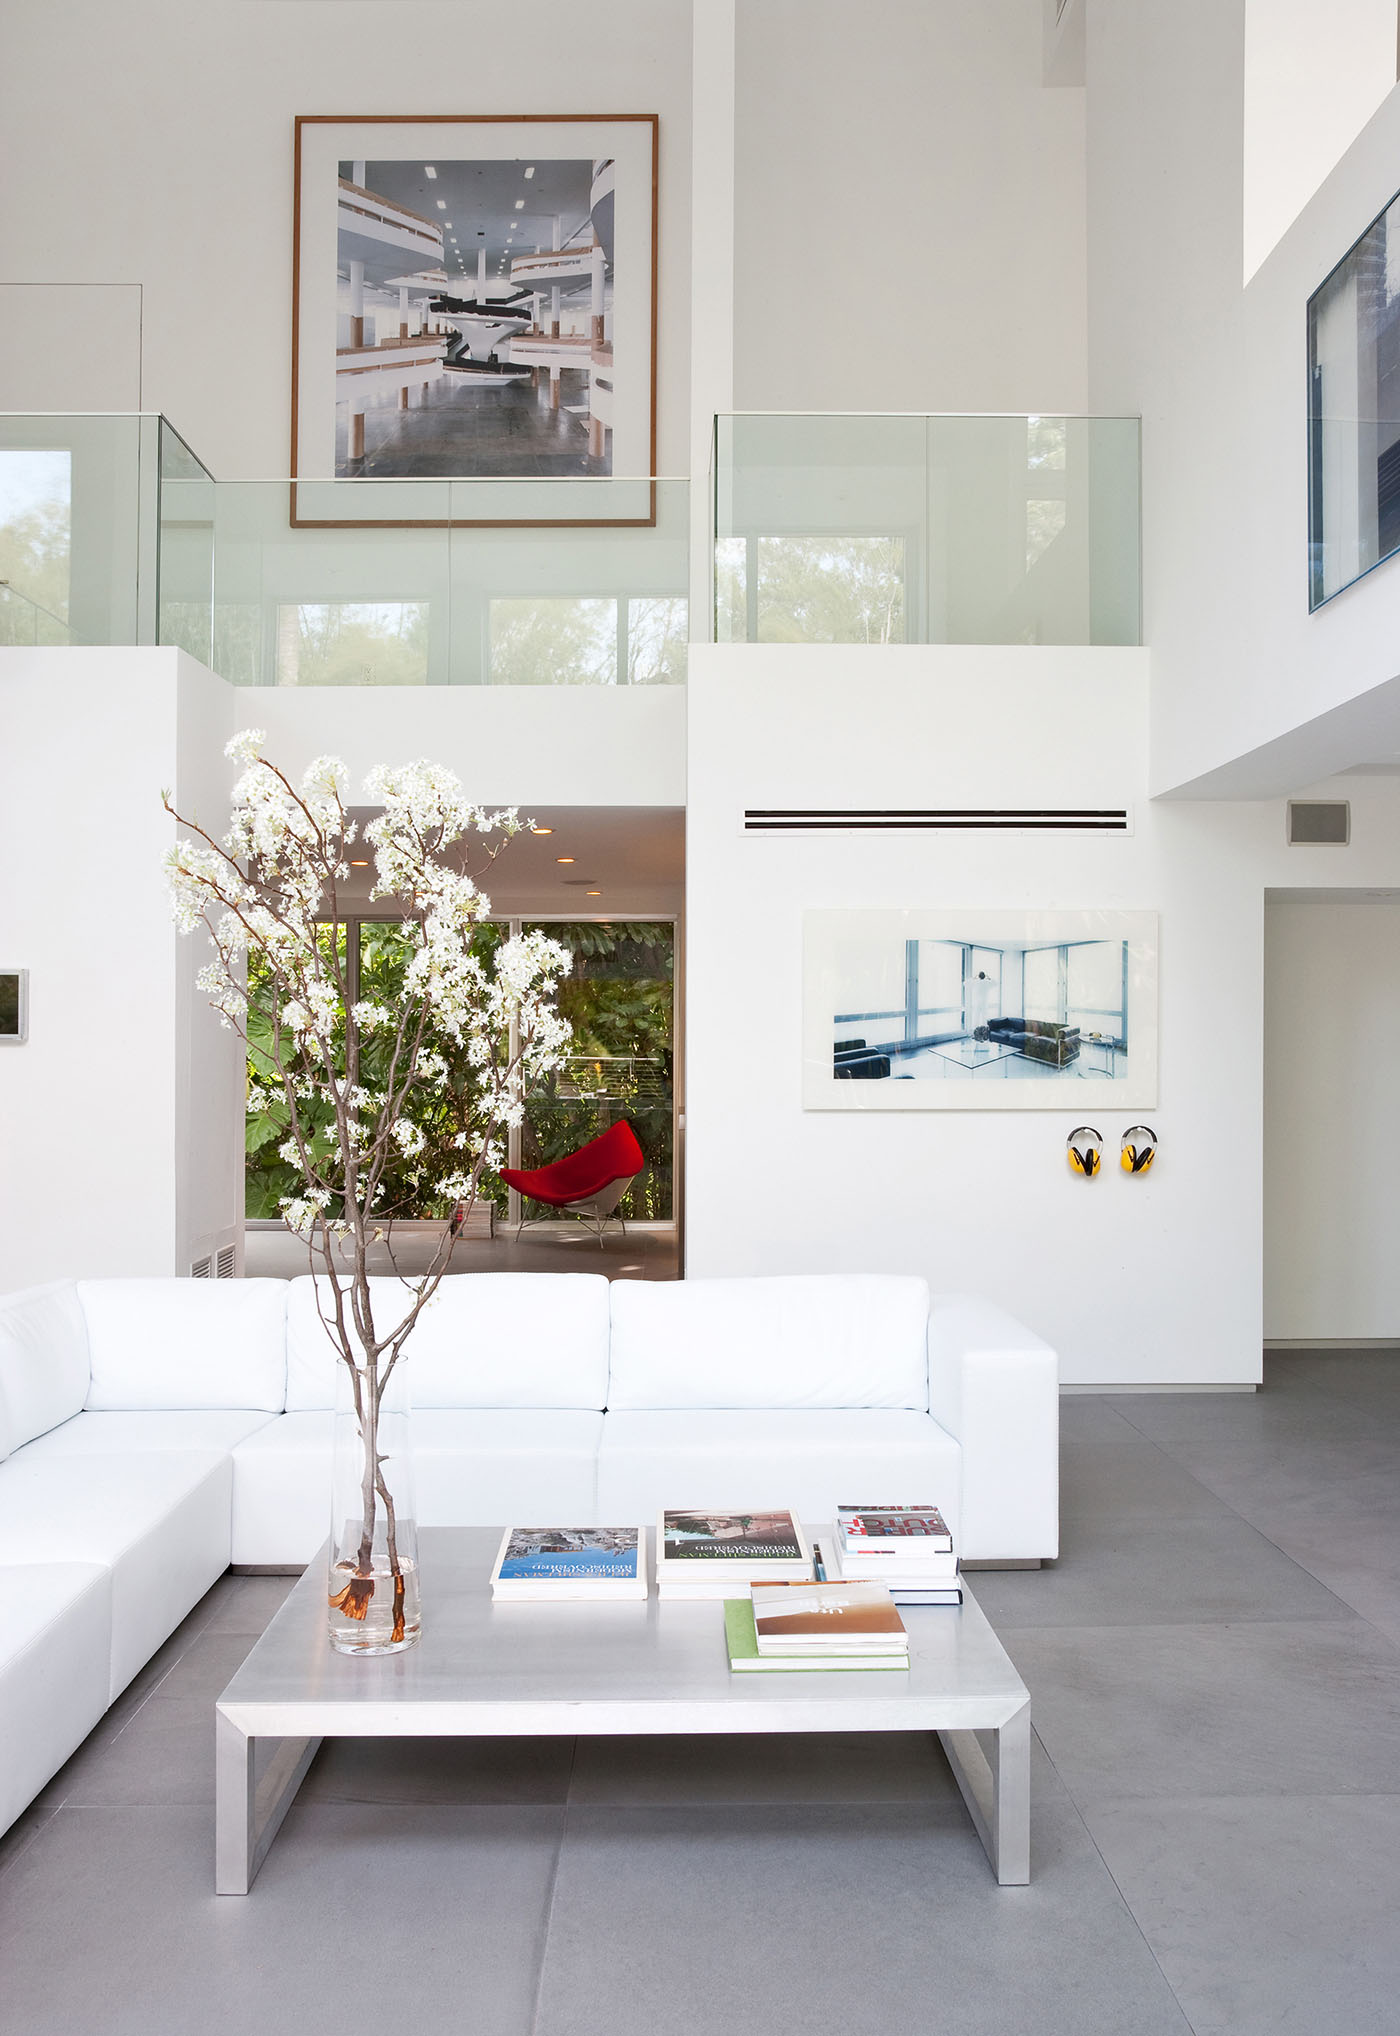 Calm and Minimalistic Spaces of Utopia Residence Coconut Grove by [STRANG] Architecture-05